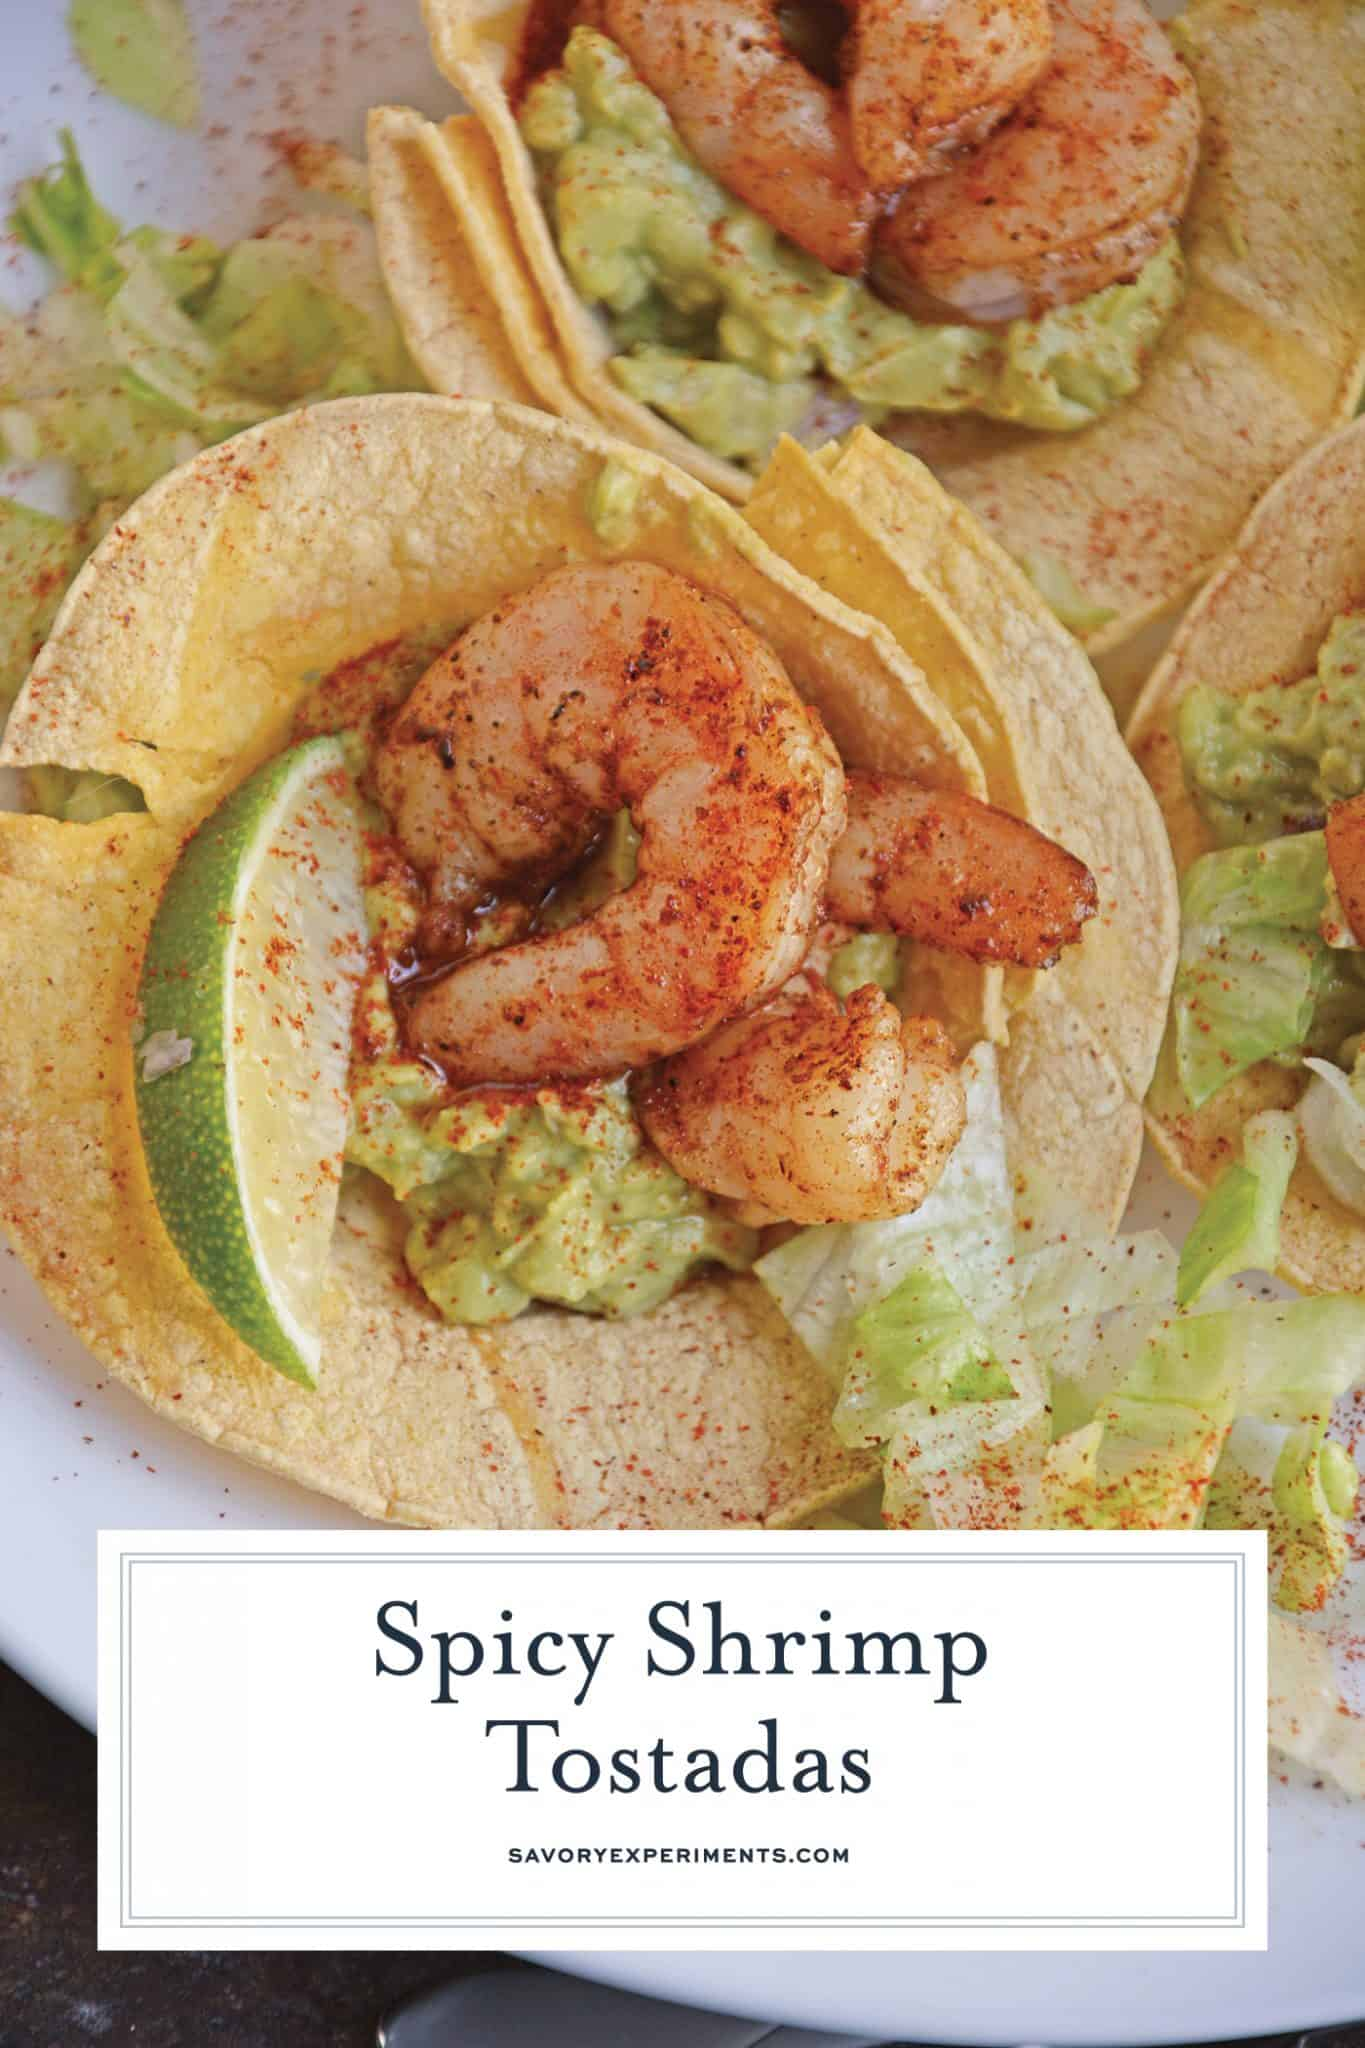 Shrimp Tostada with limes and guacamole